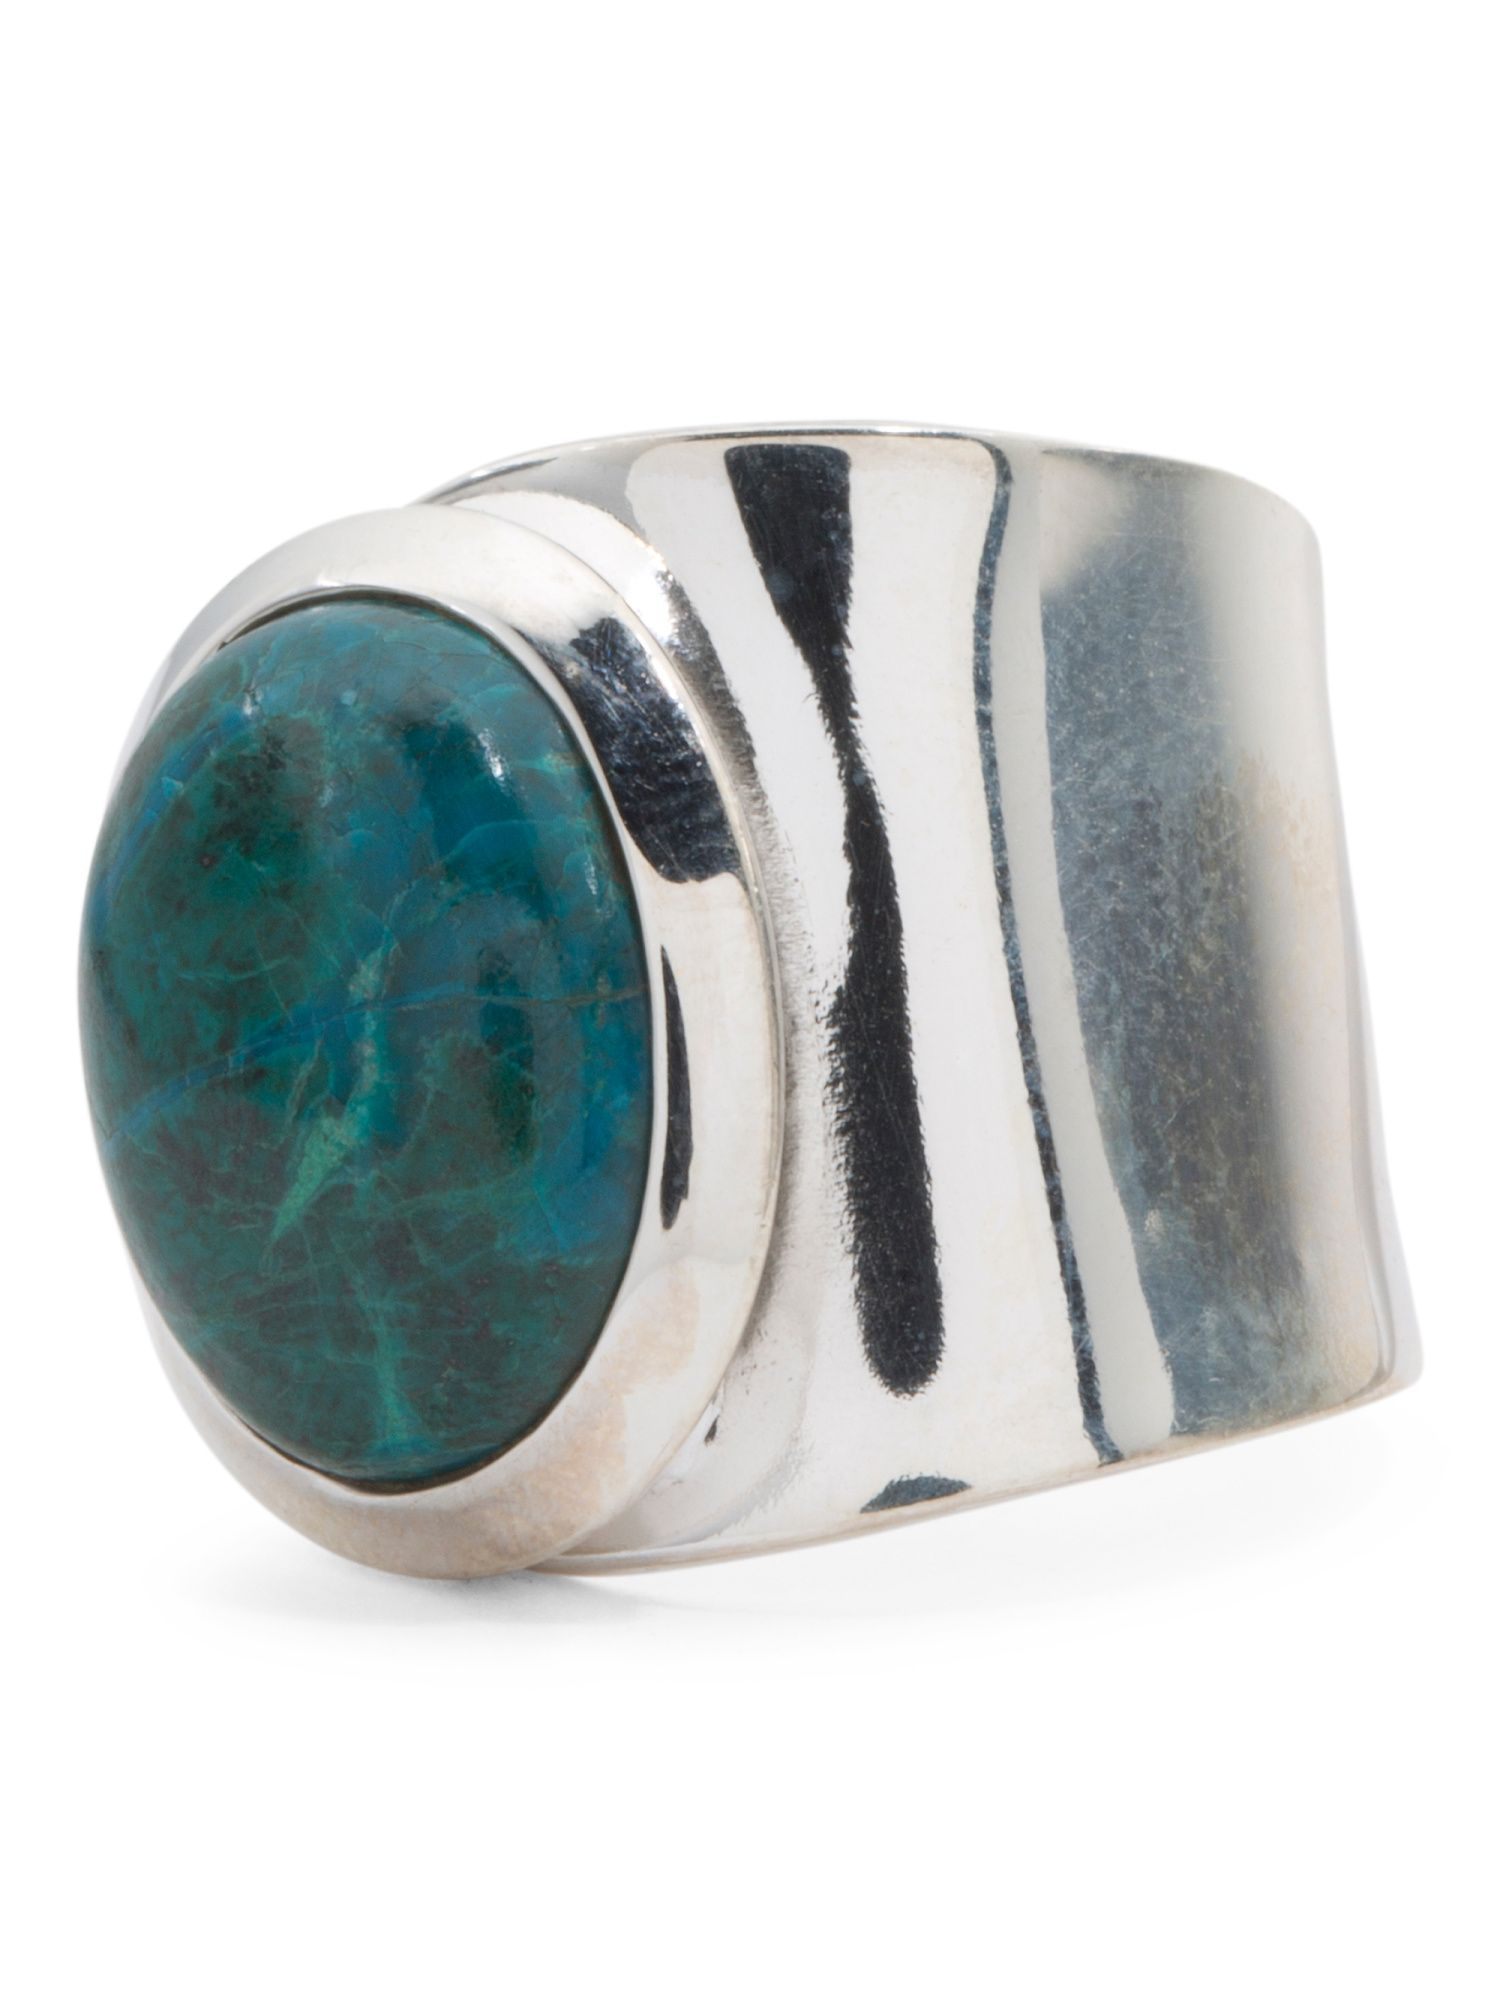 Made In India Sterling Silver Gemstone Spoon Ring